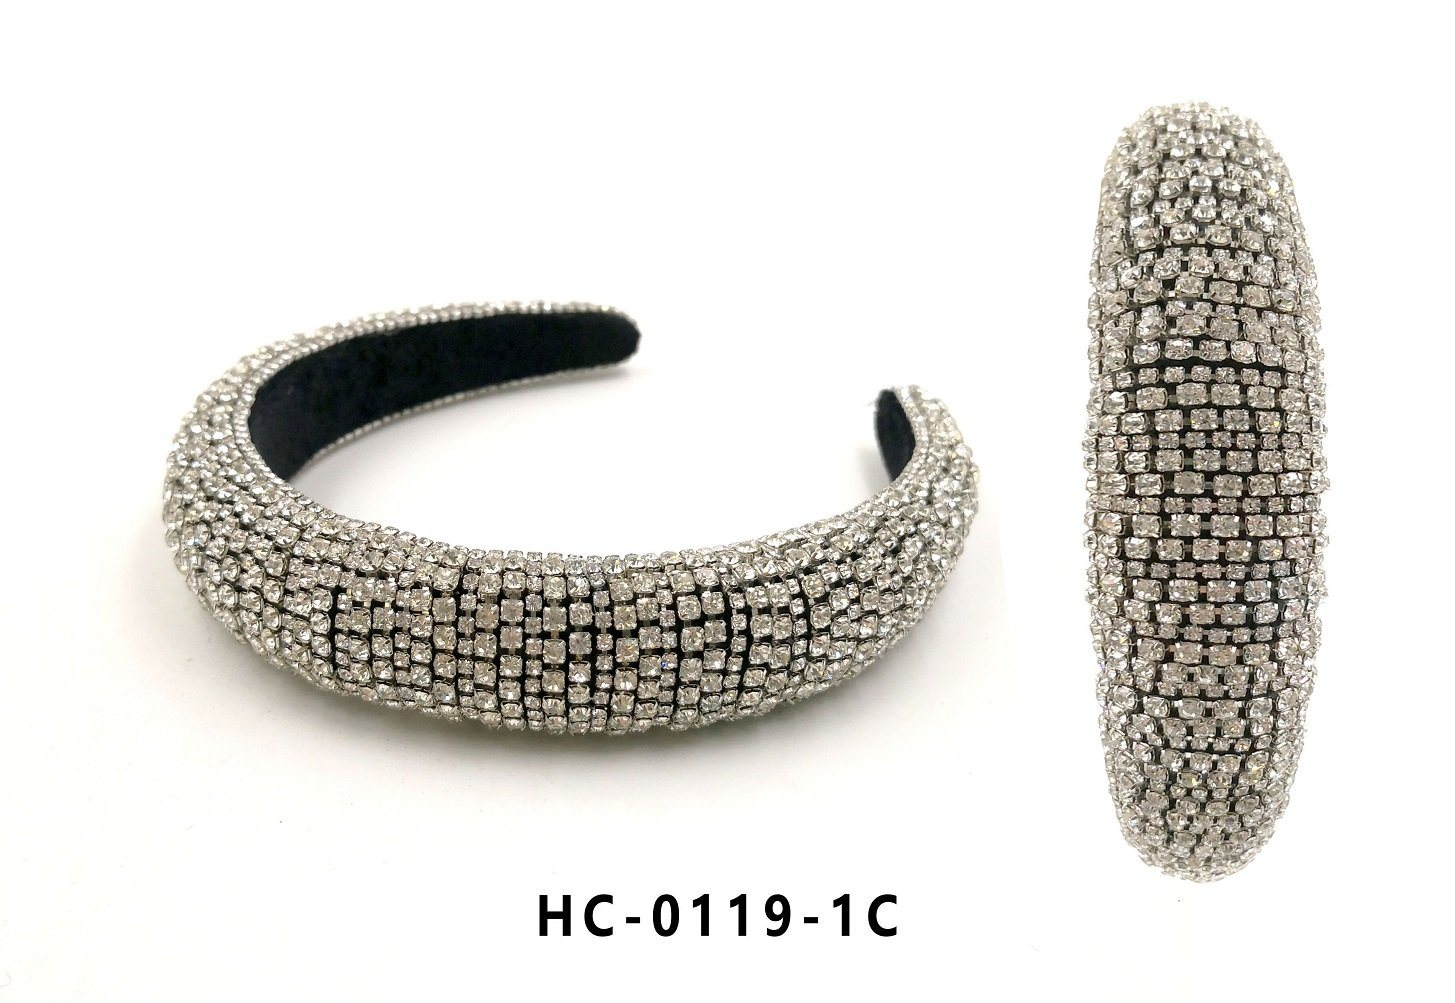 wholesale-fashion-headband-rhinestone-HC01191C